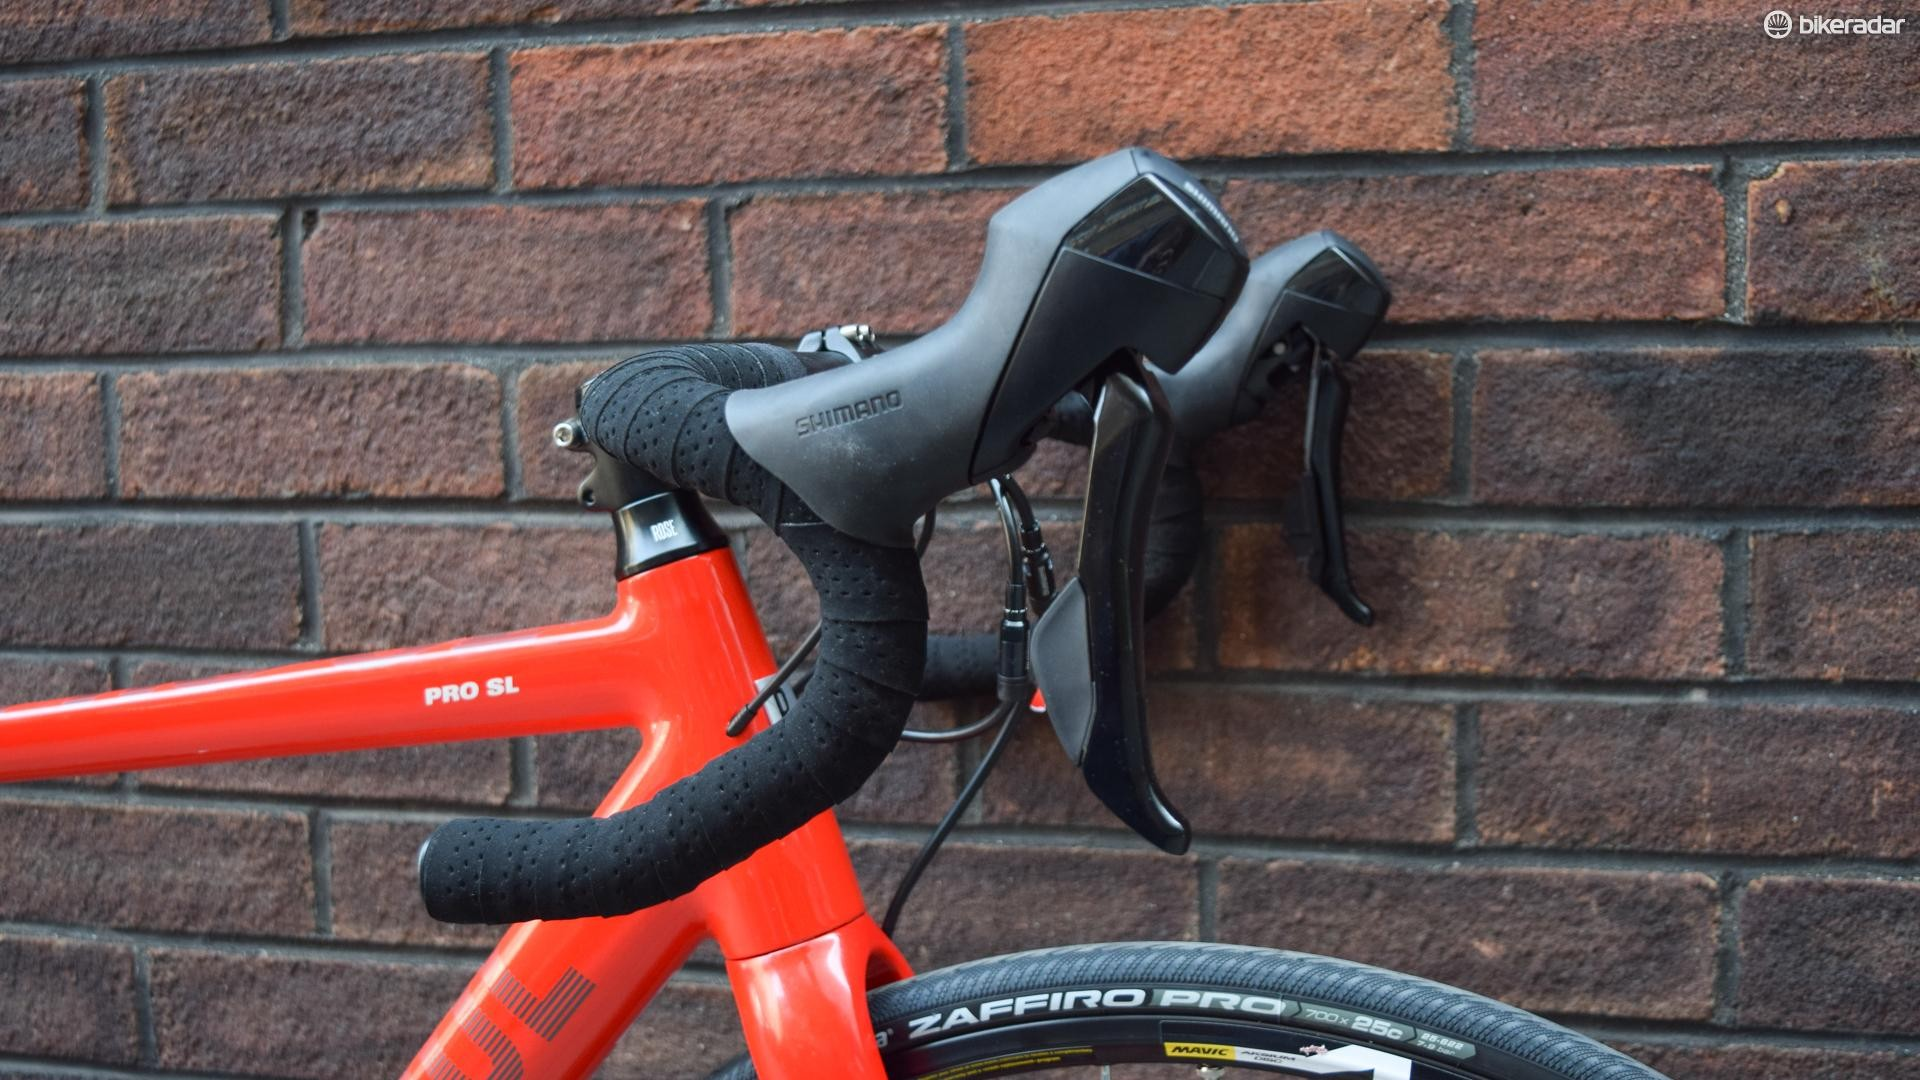 Shimano's RS505 hydraulic levers are aggressively unattractive, but effective